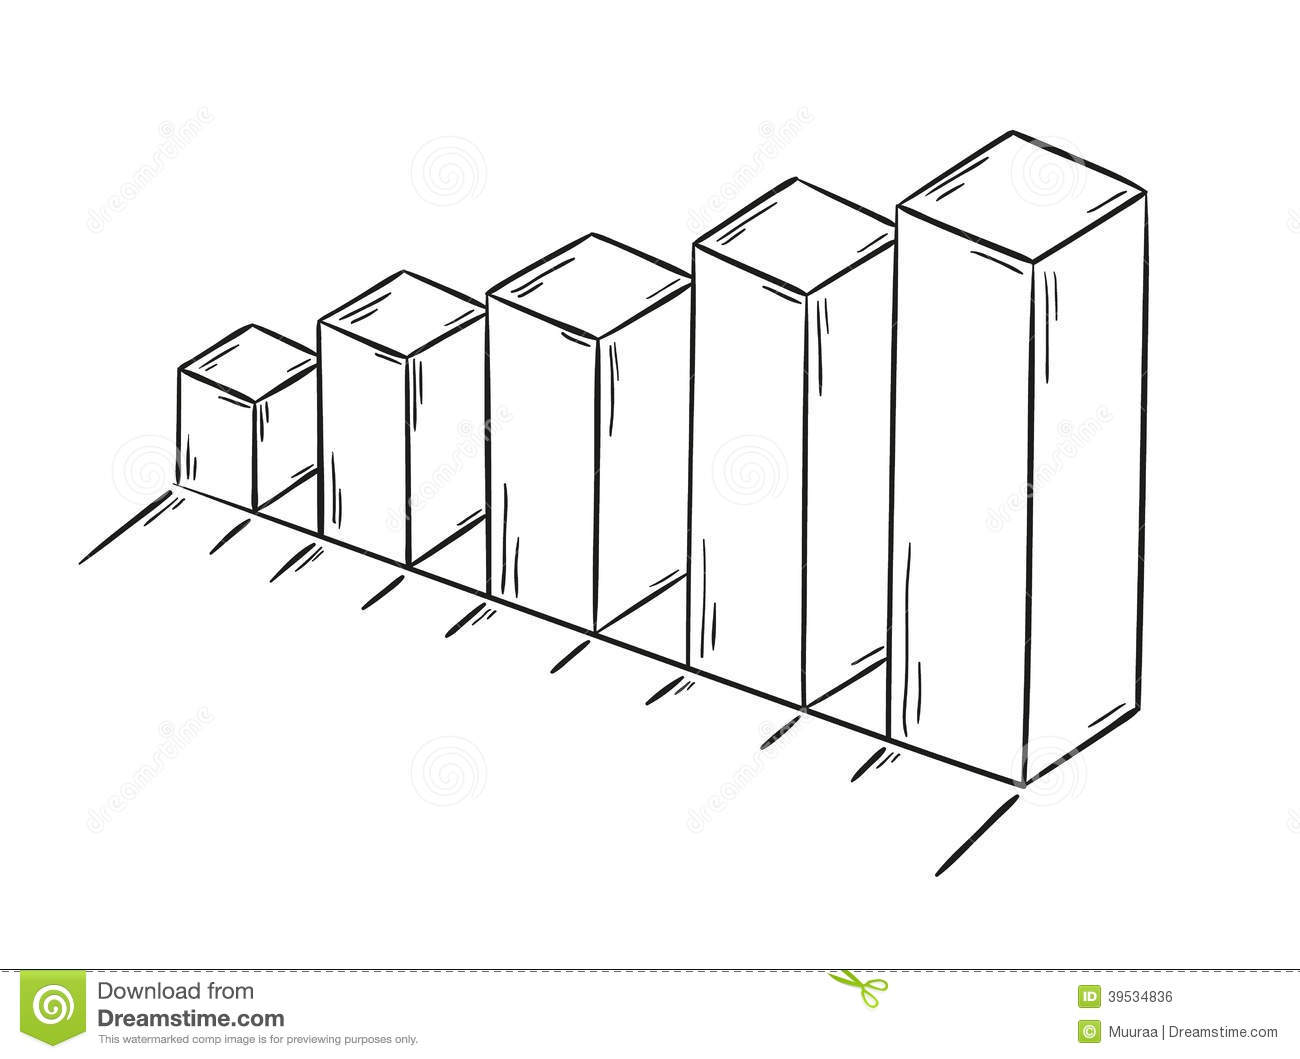 Notebook And Pen Sketch Stock Vector Art More Images Of: Sketch Of The Bar Chart Stock Vector